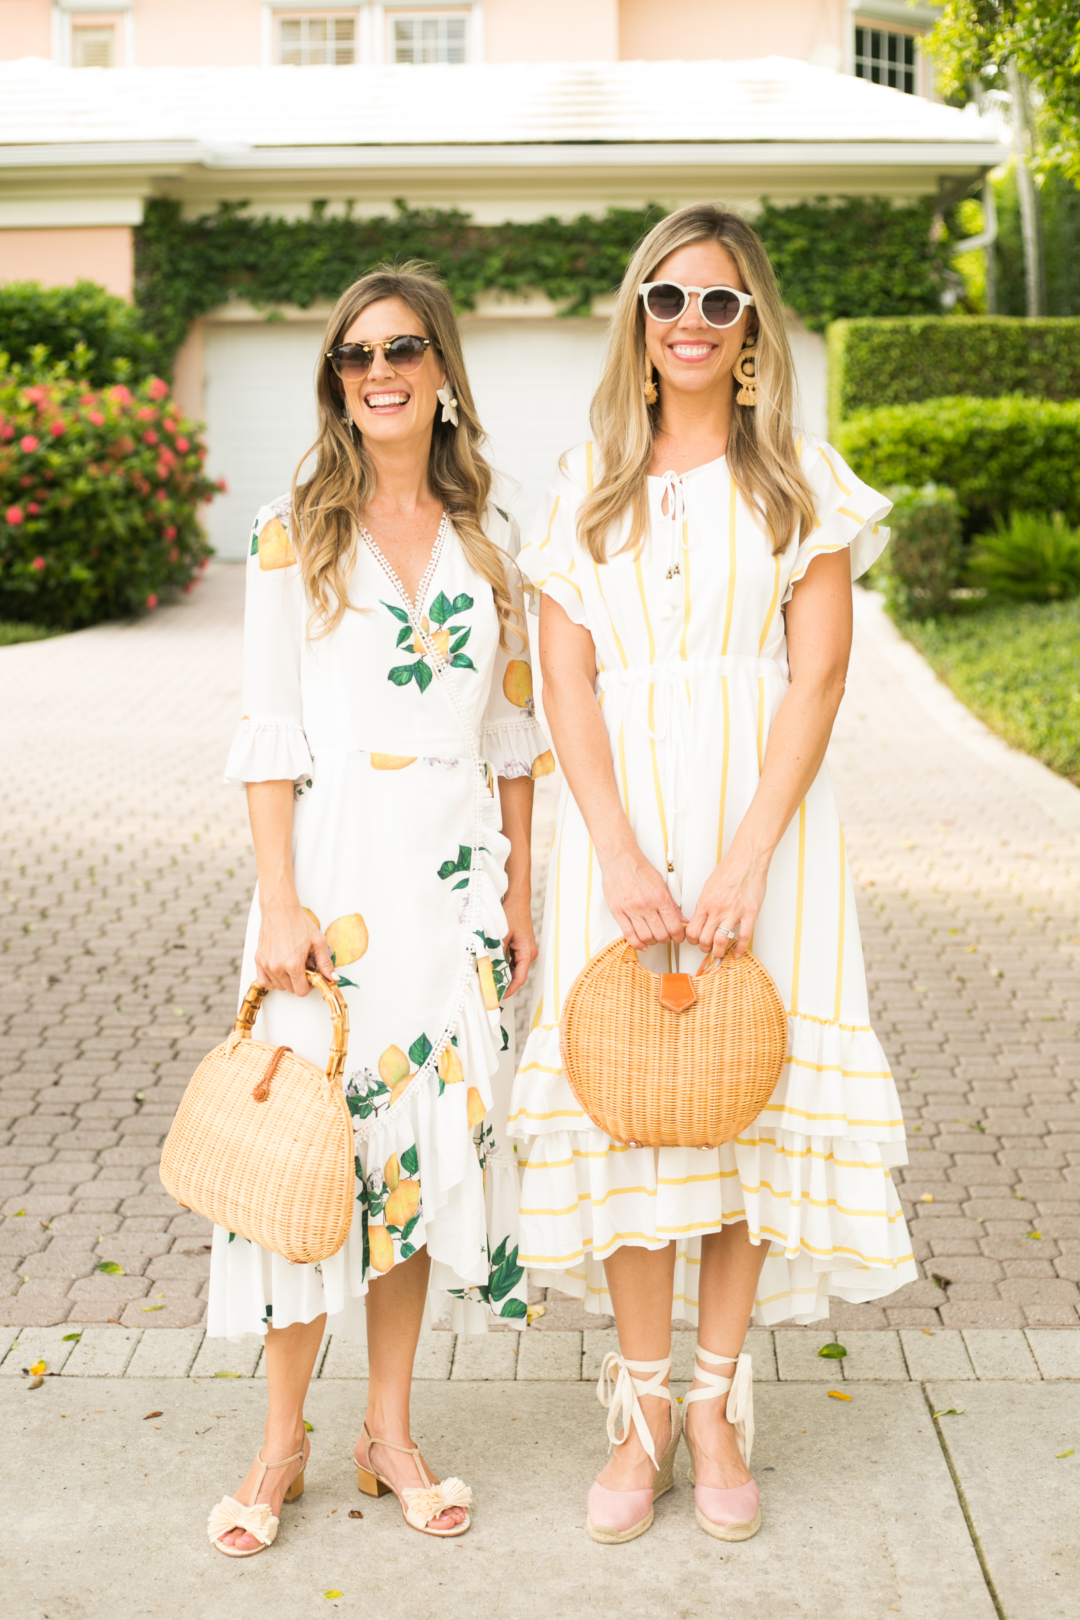 Fashion: Lemons and Stripes with Palm Beach Lately